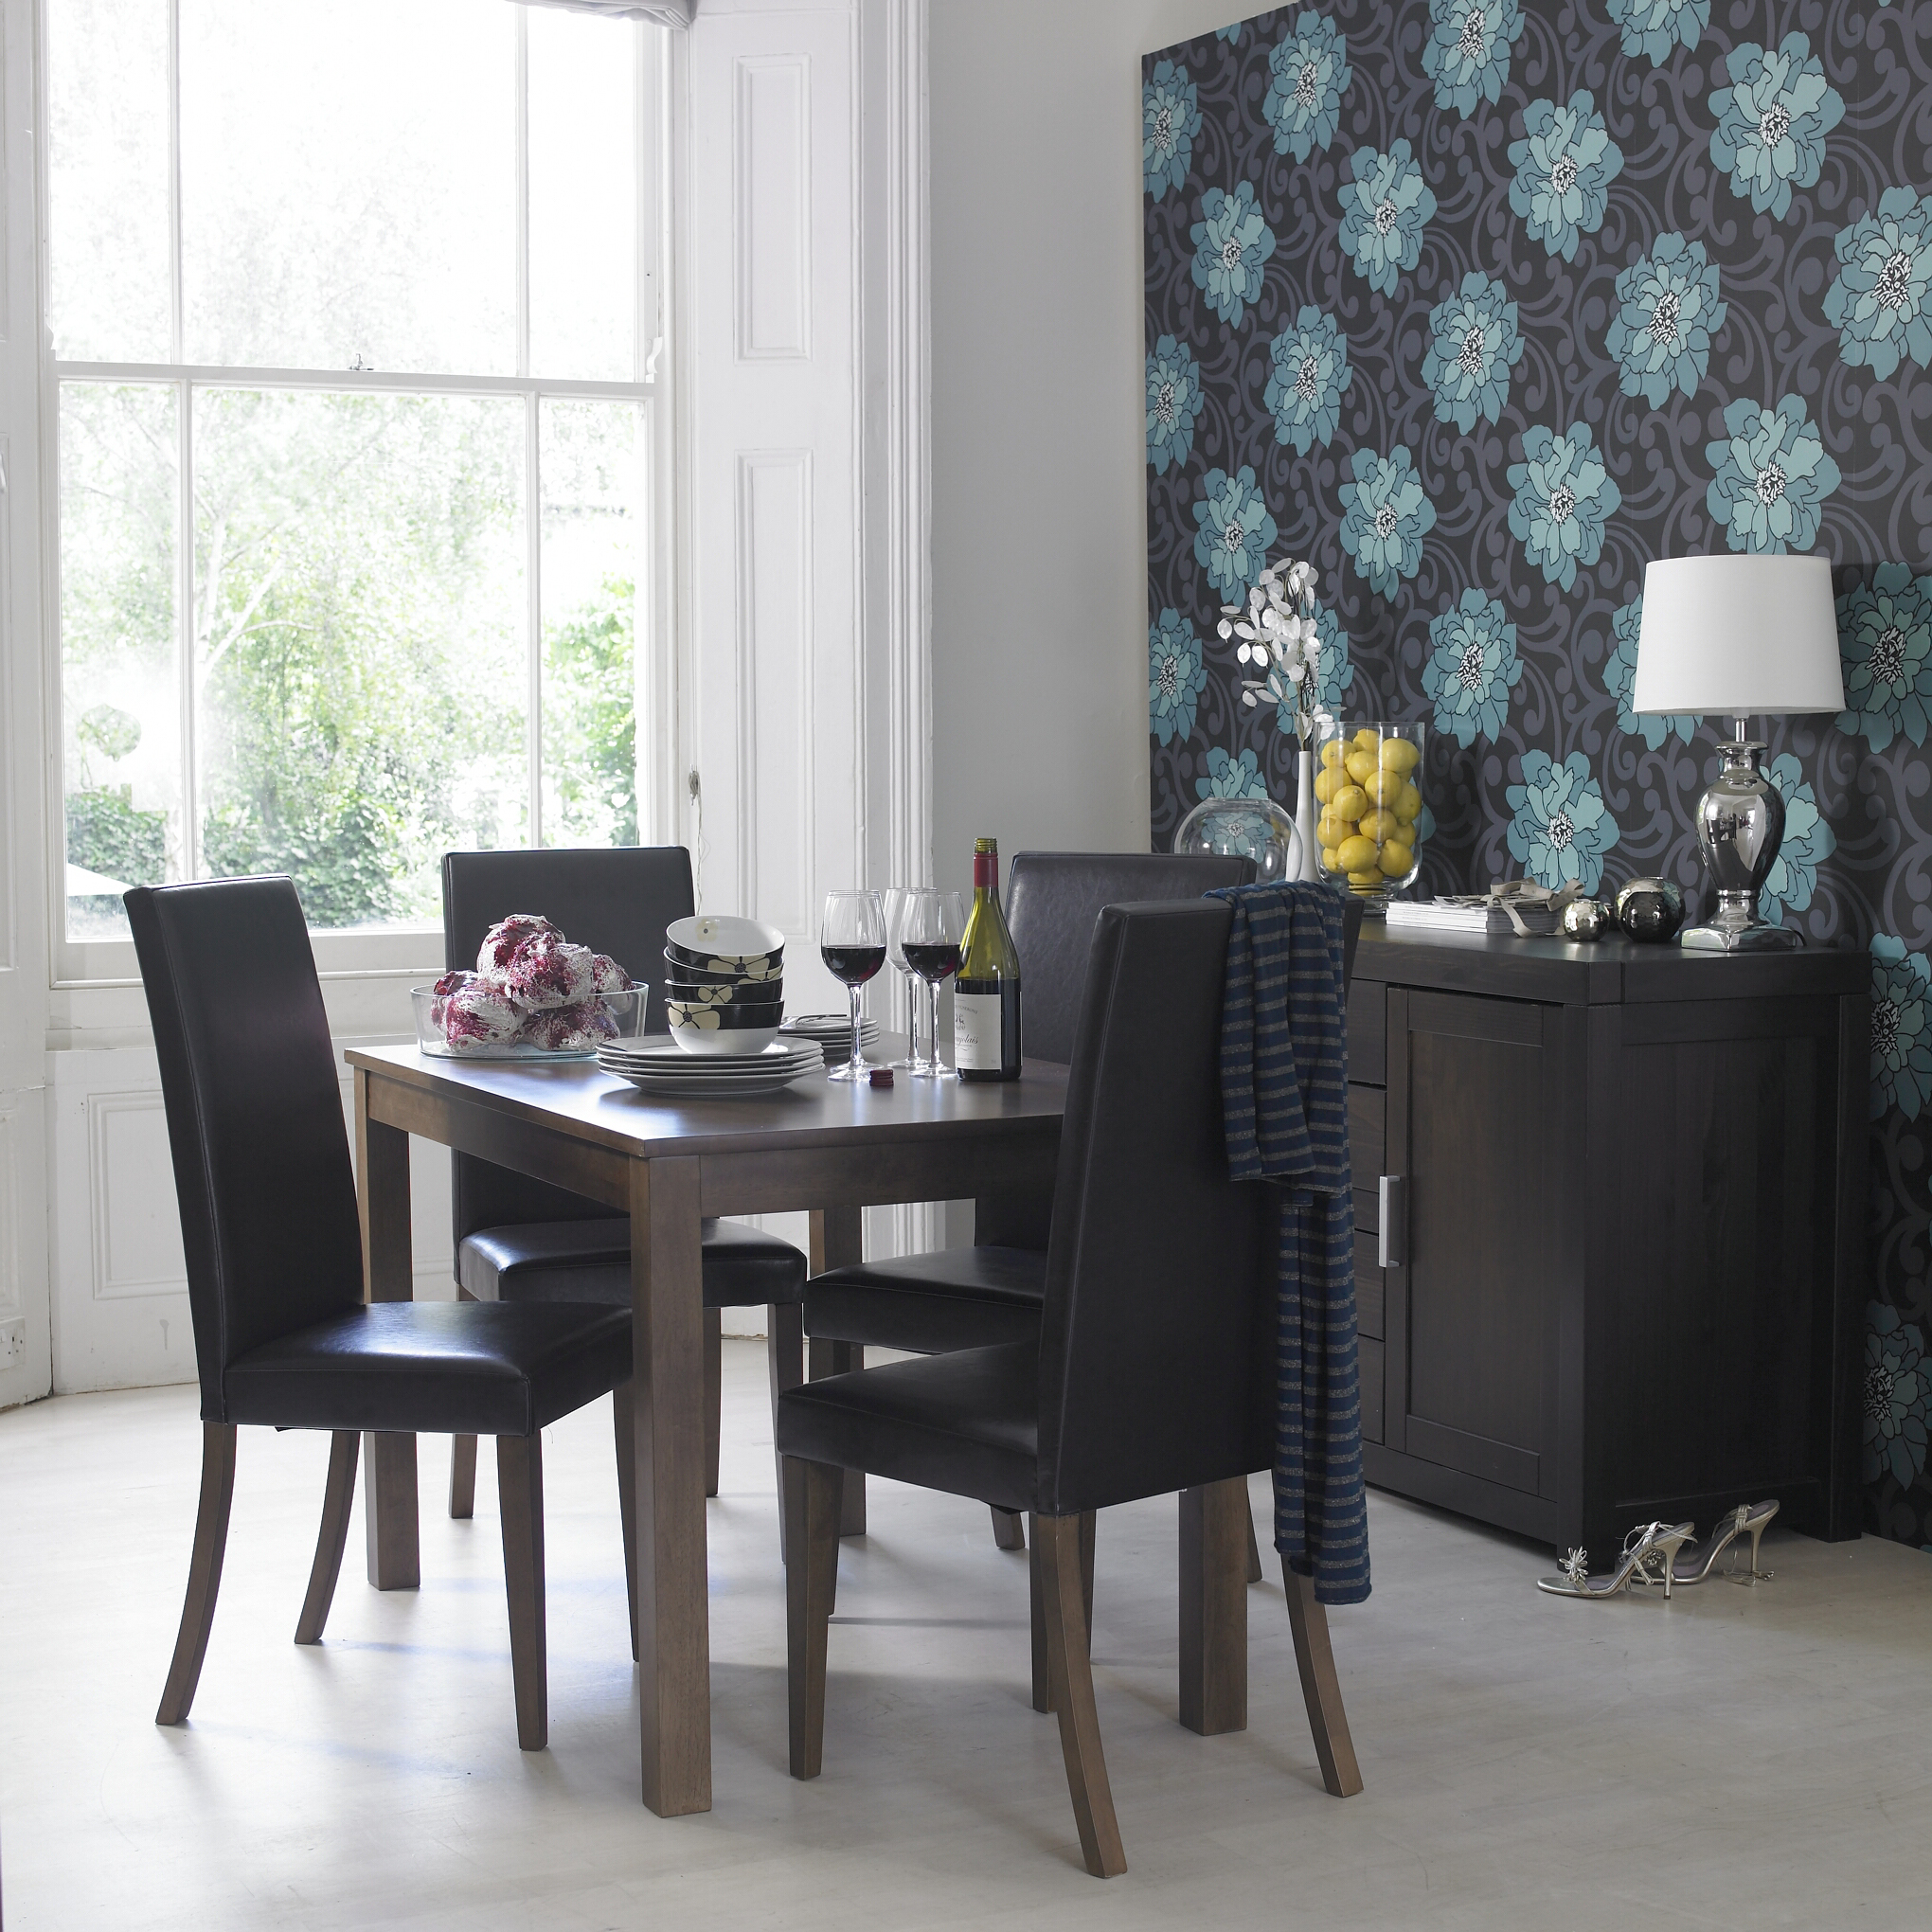 Dine in style at home.jpg